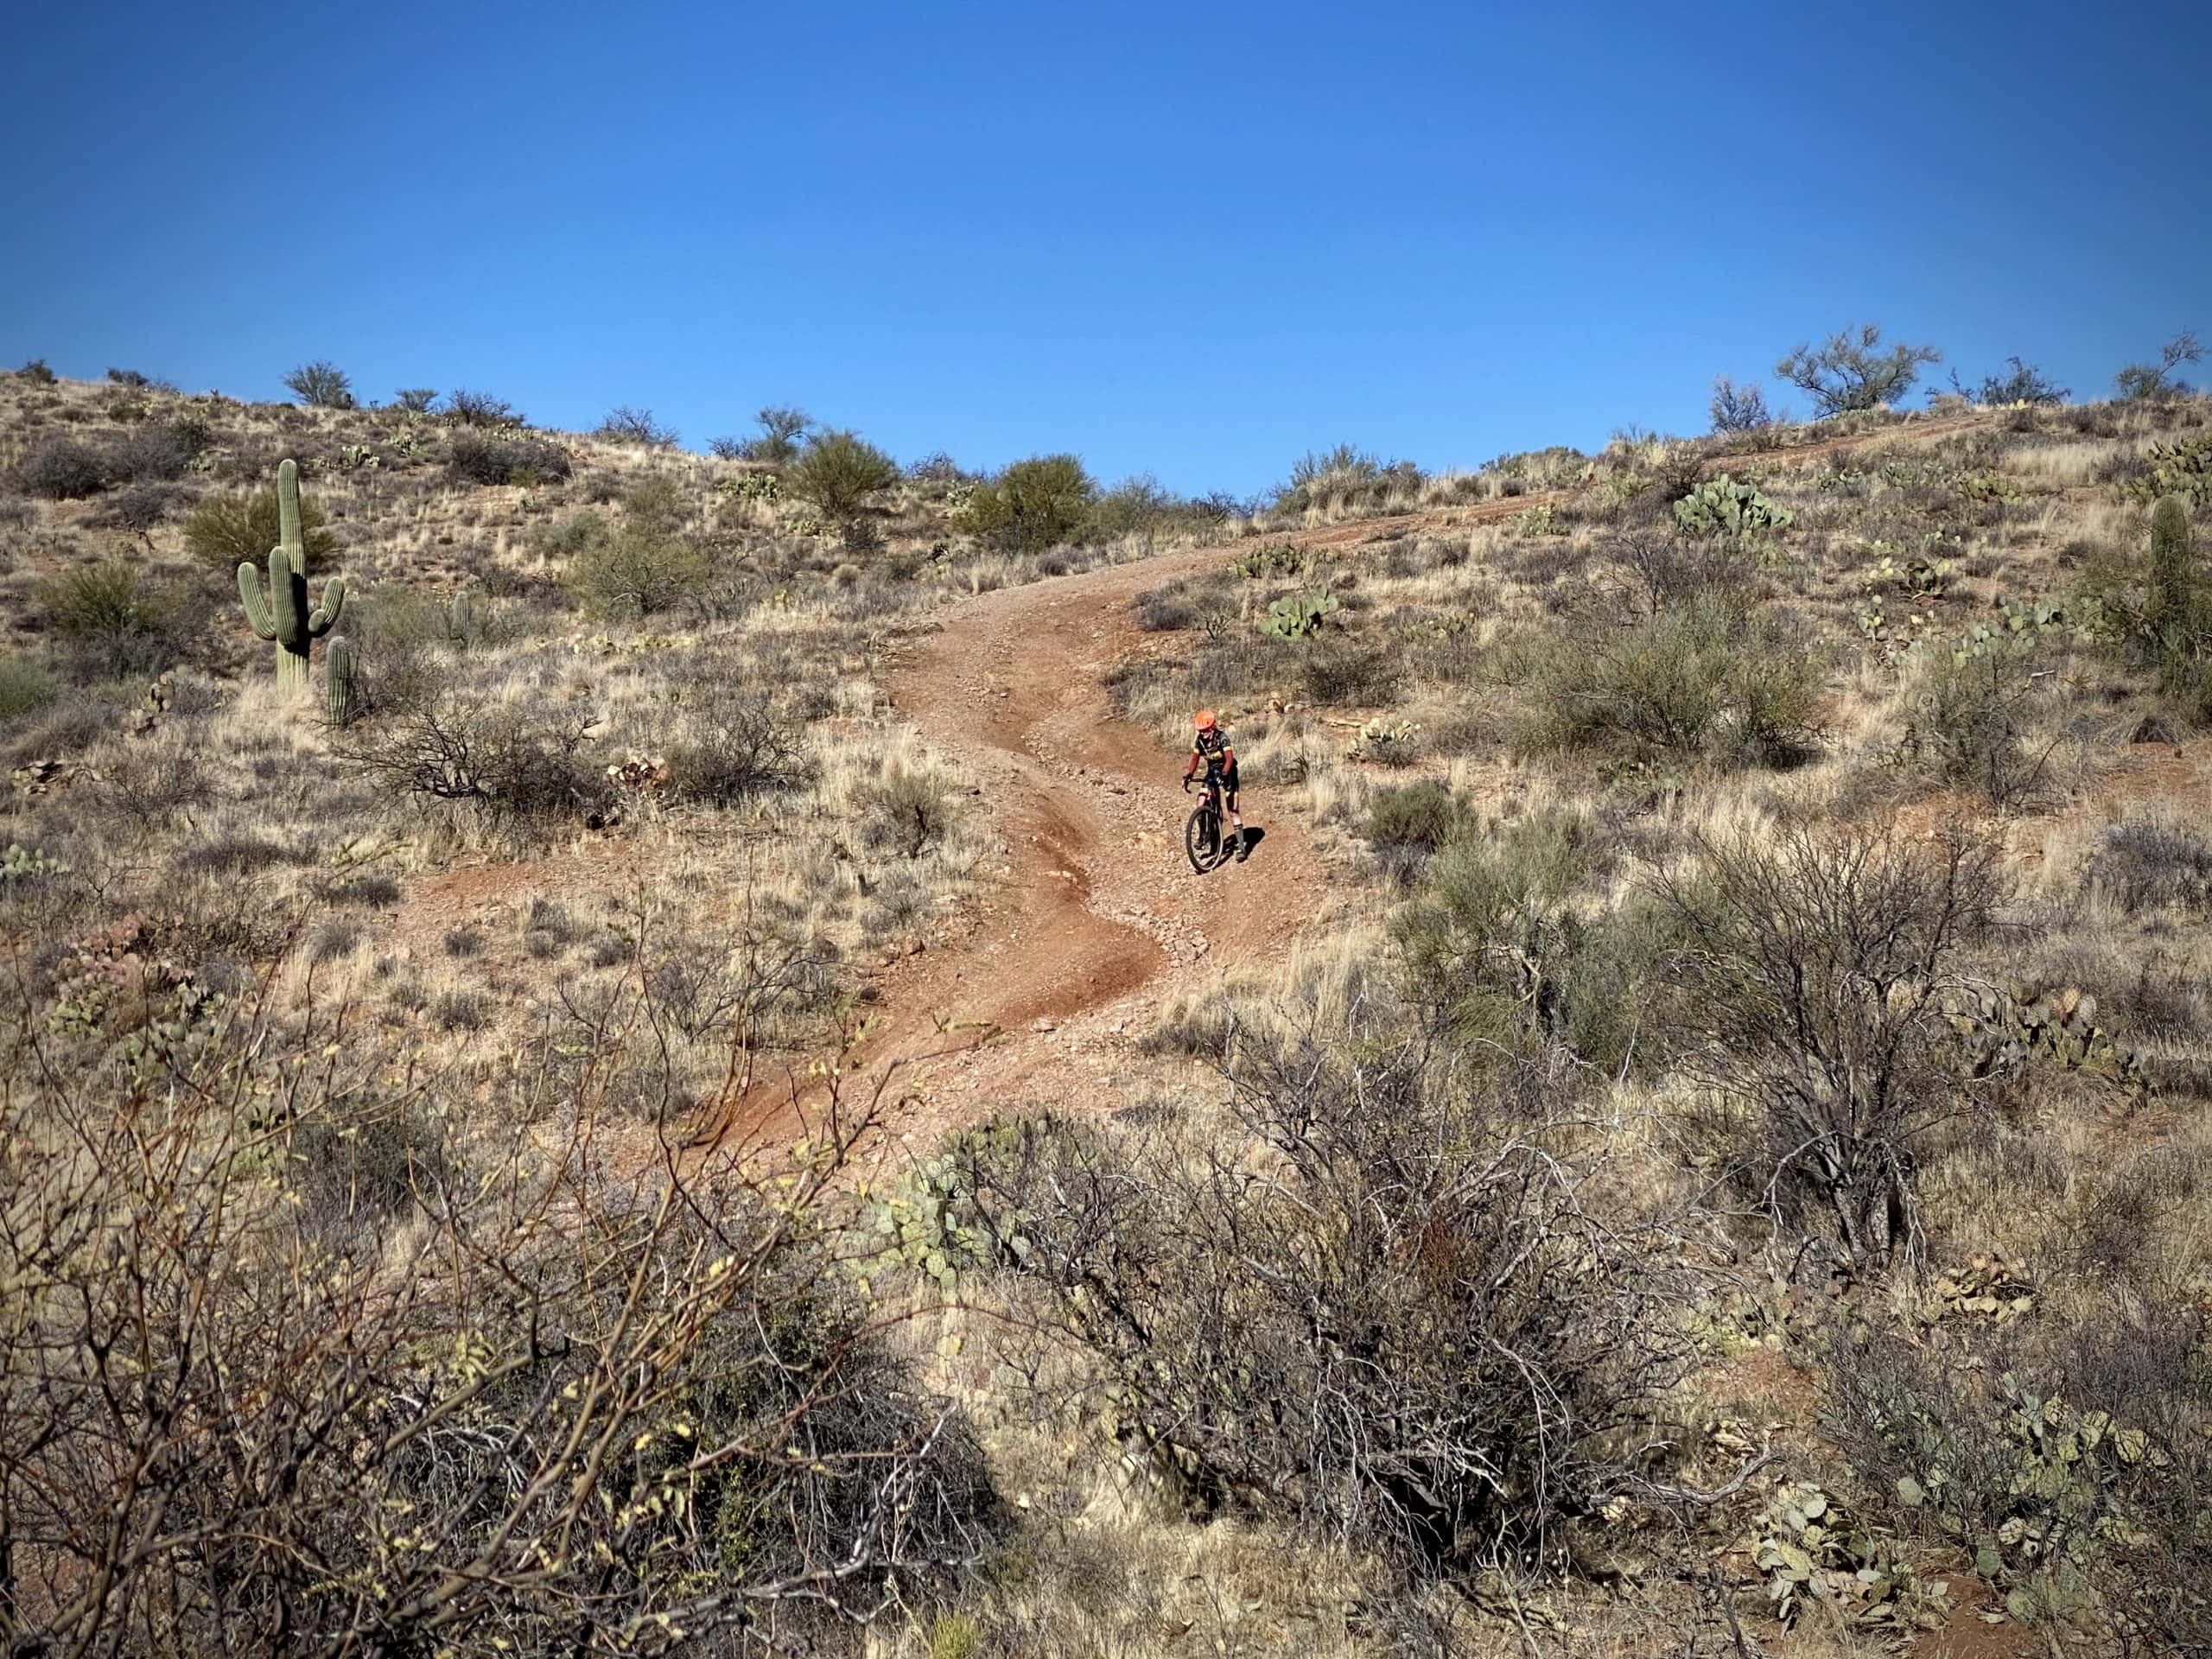 Gravel Girl descending a rugged section of dirt road in the Sonoran desert between Tucson and Florence.